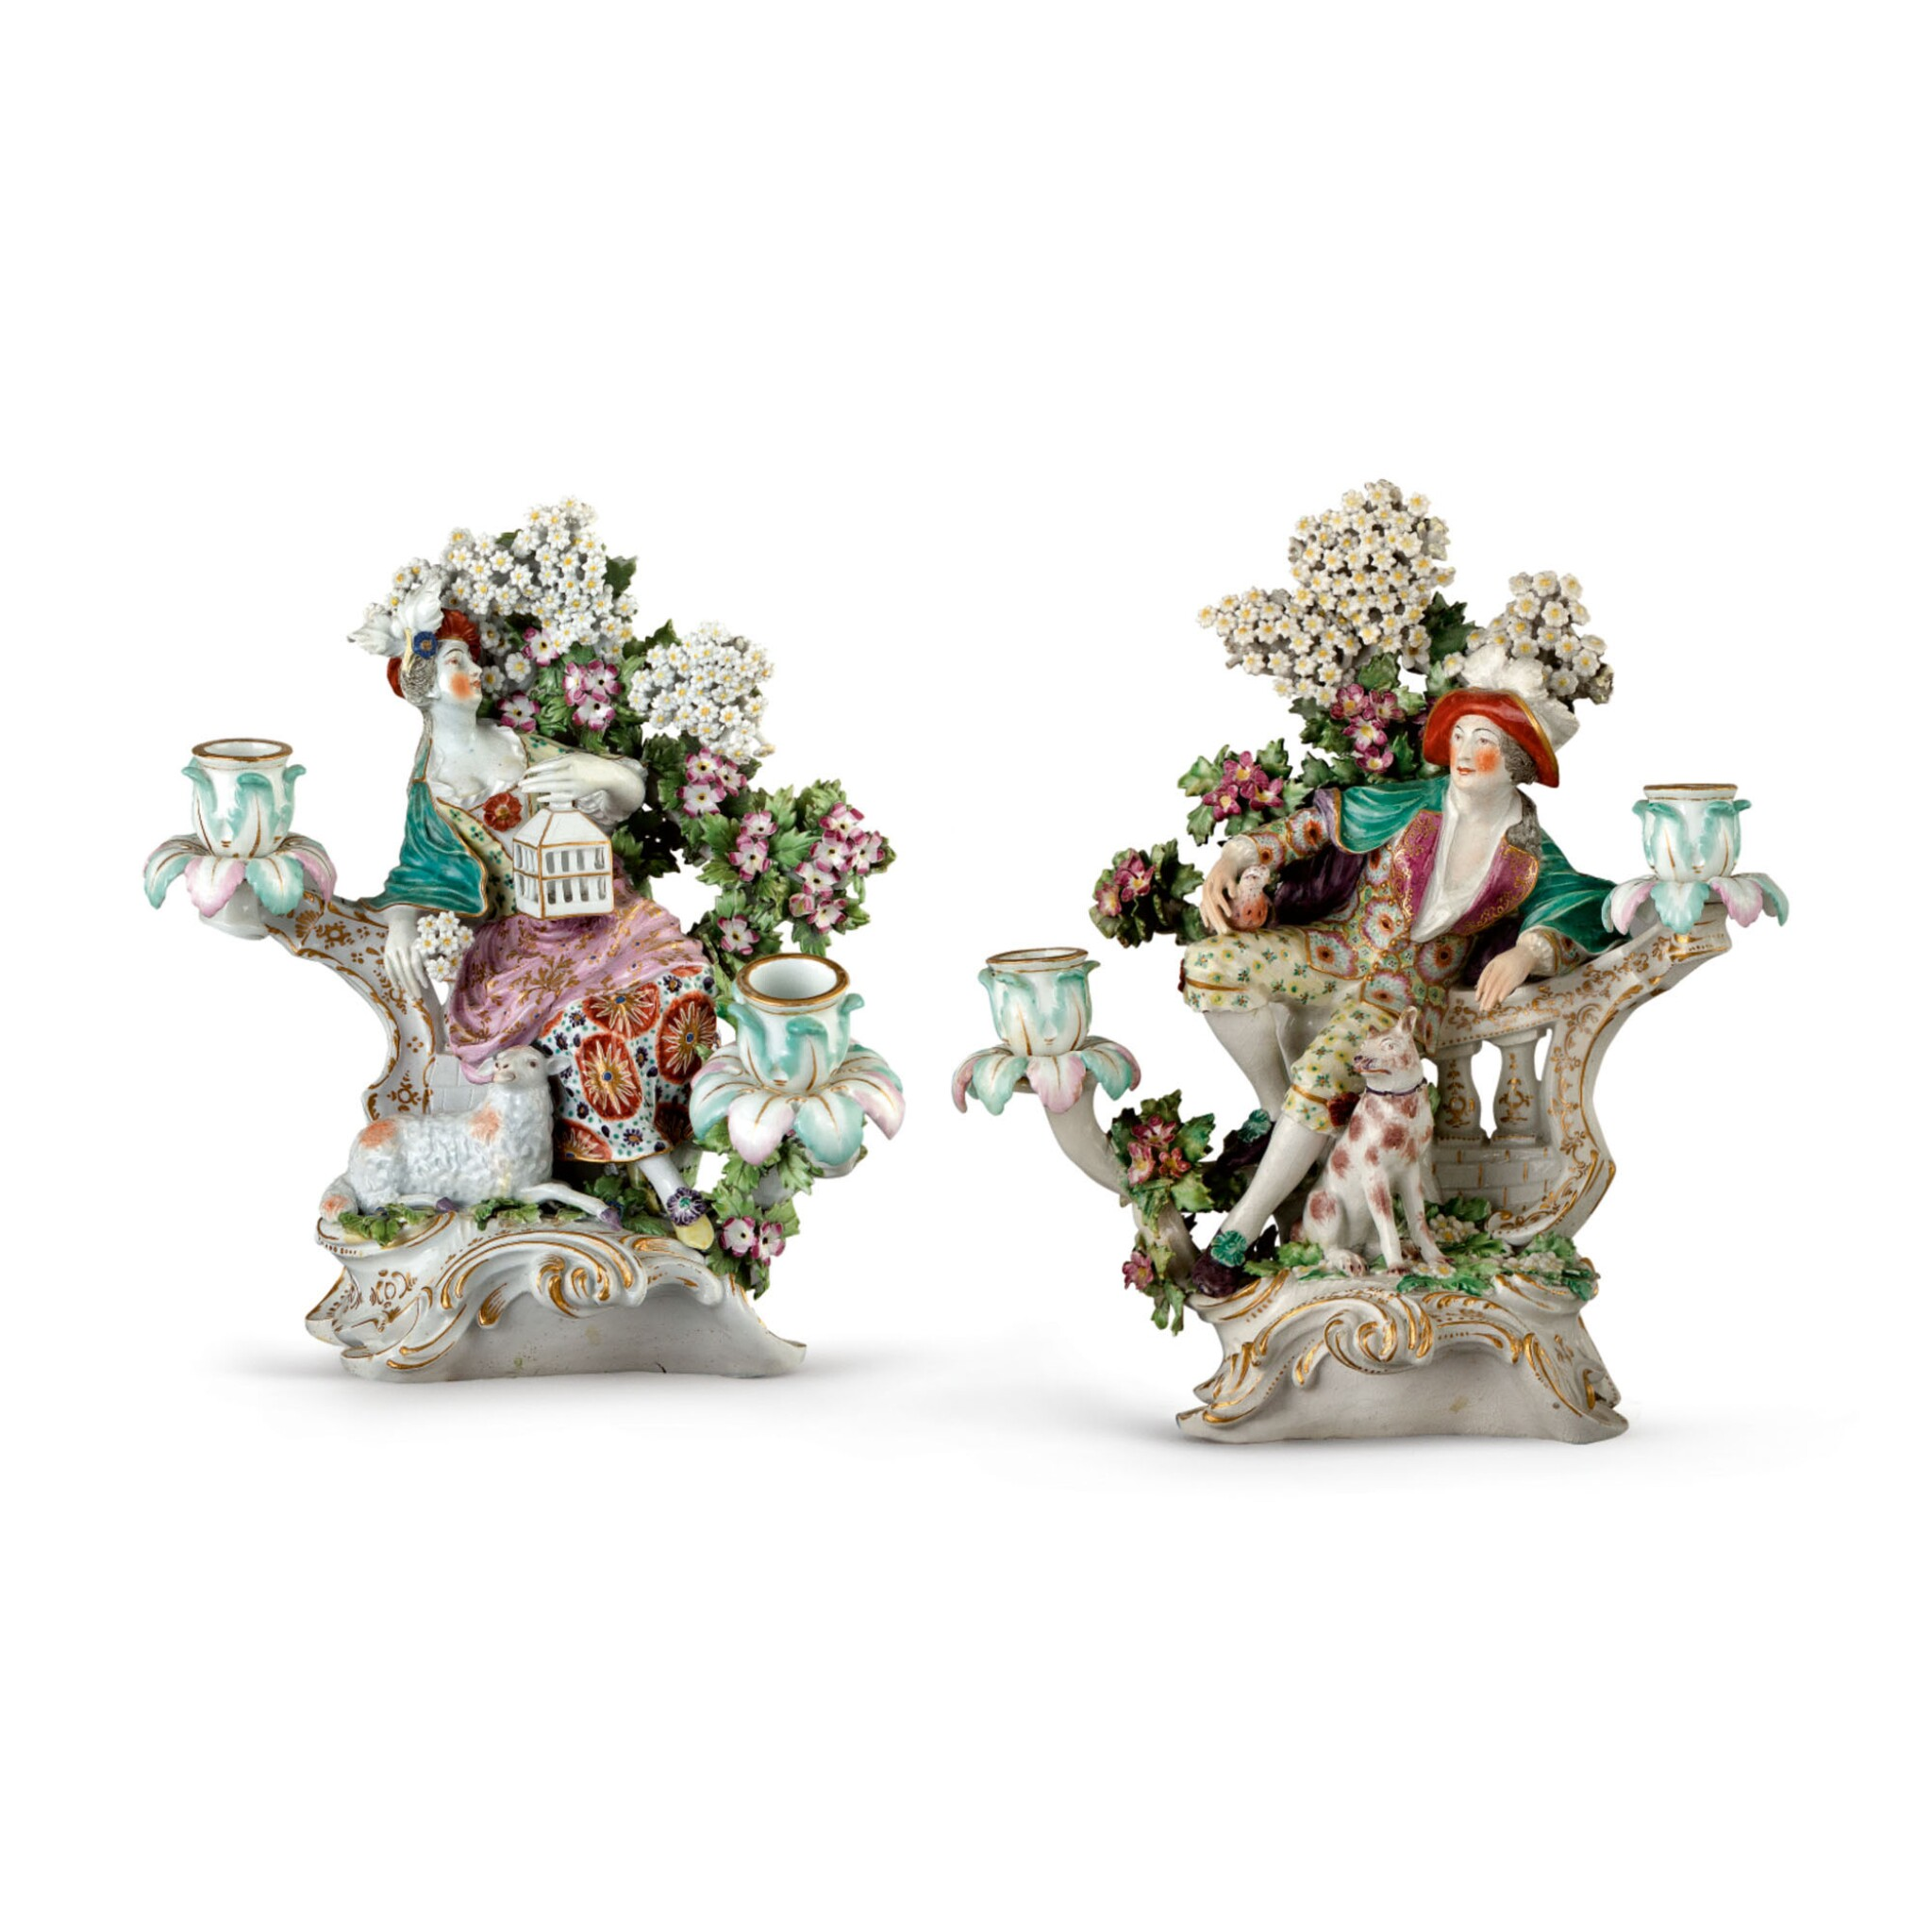 View full screen - View 1 of Lot 603. A PAIR OF DERBY BOCAGE CANDLESTICK FIGURES ALLEGORICAL OF 'LIBERTY' AND 'MATRIMONY', CIRCA 1770-75.